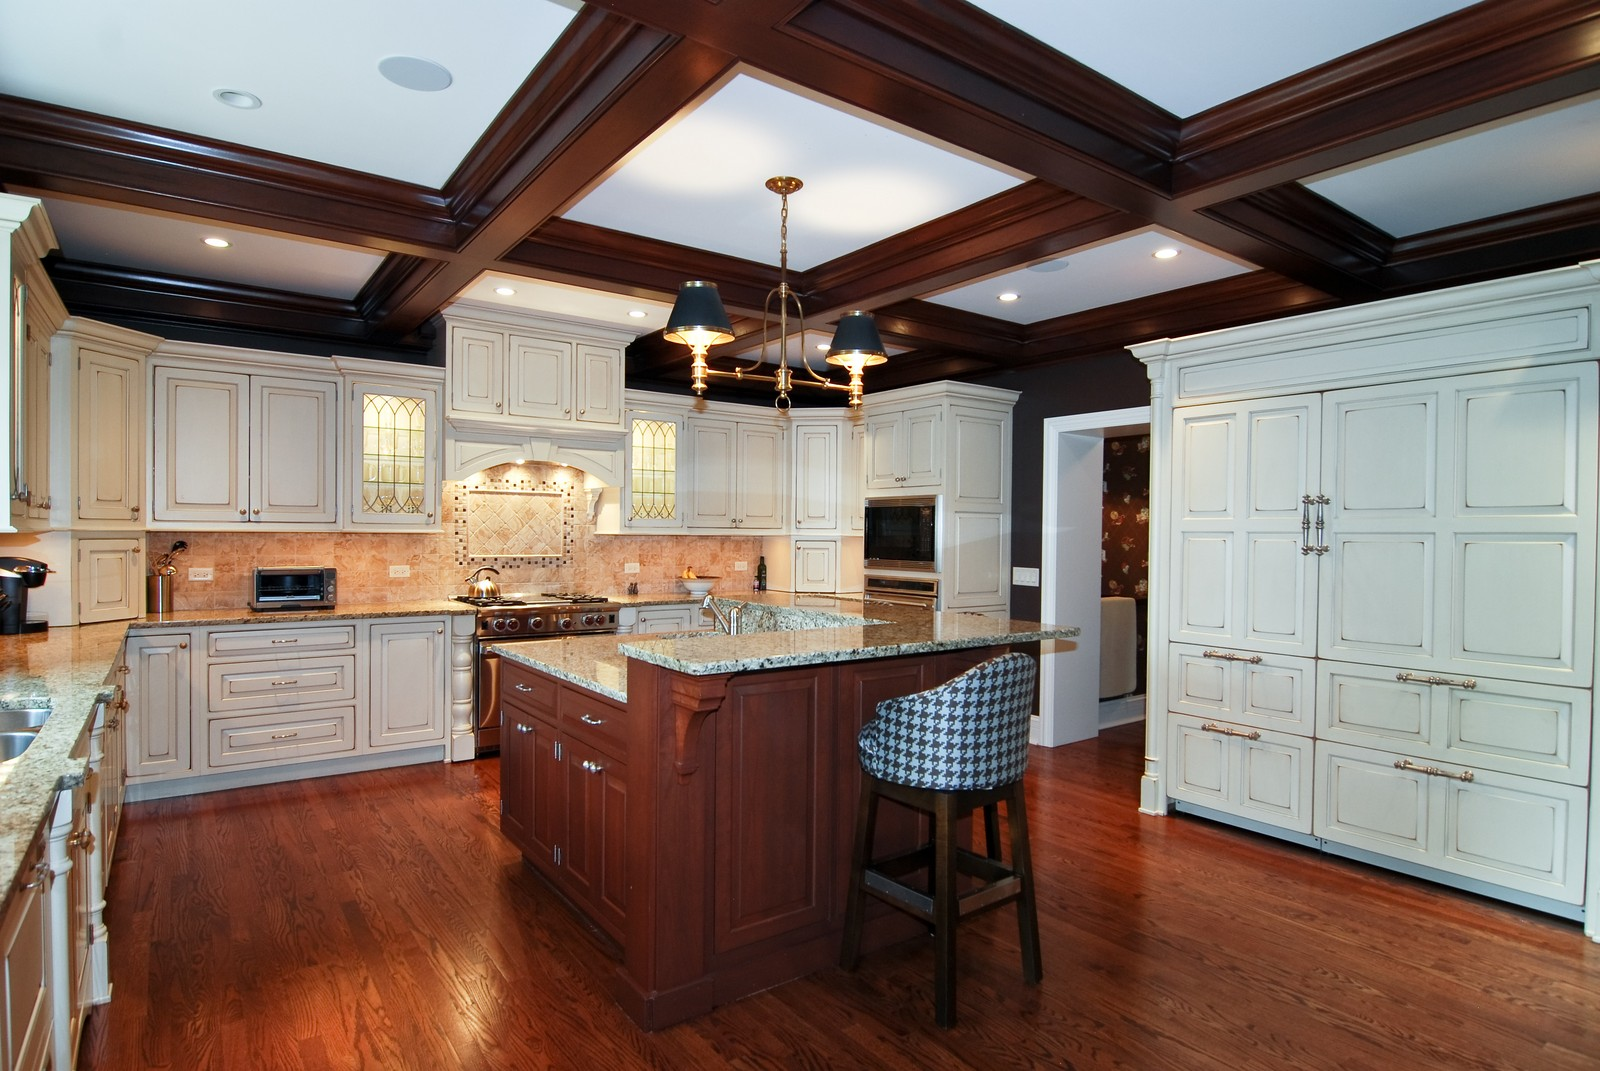 Real Estate Photography - 1105 Park Ave, River Forest, IL, 60305 - Kitchen / Breakfast Room